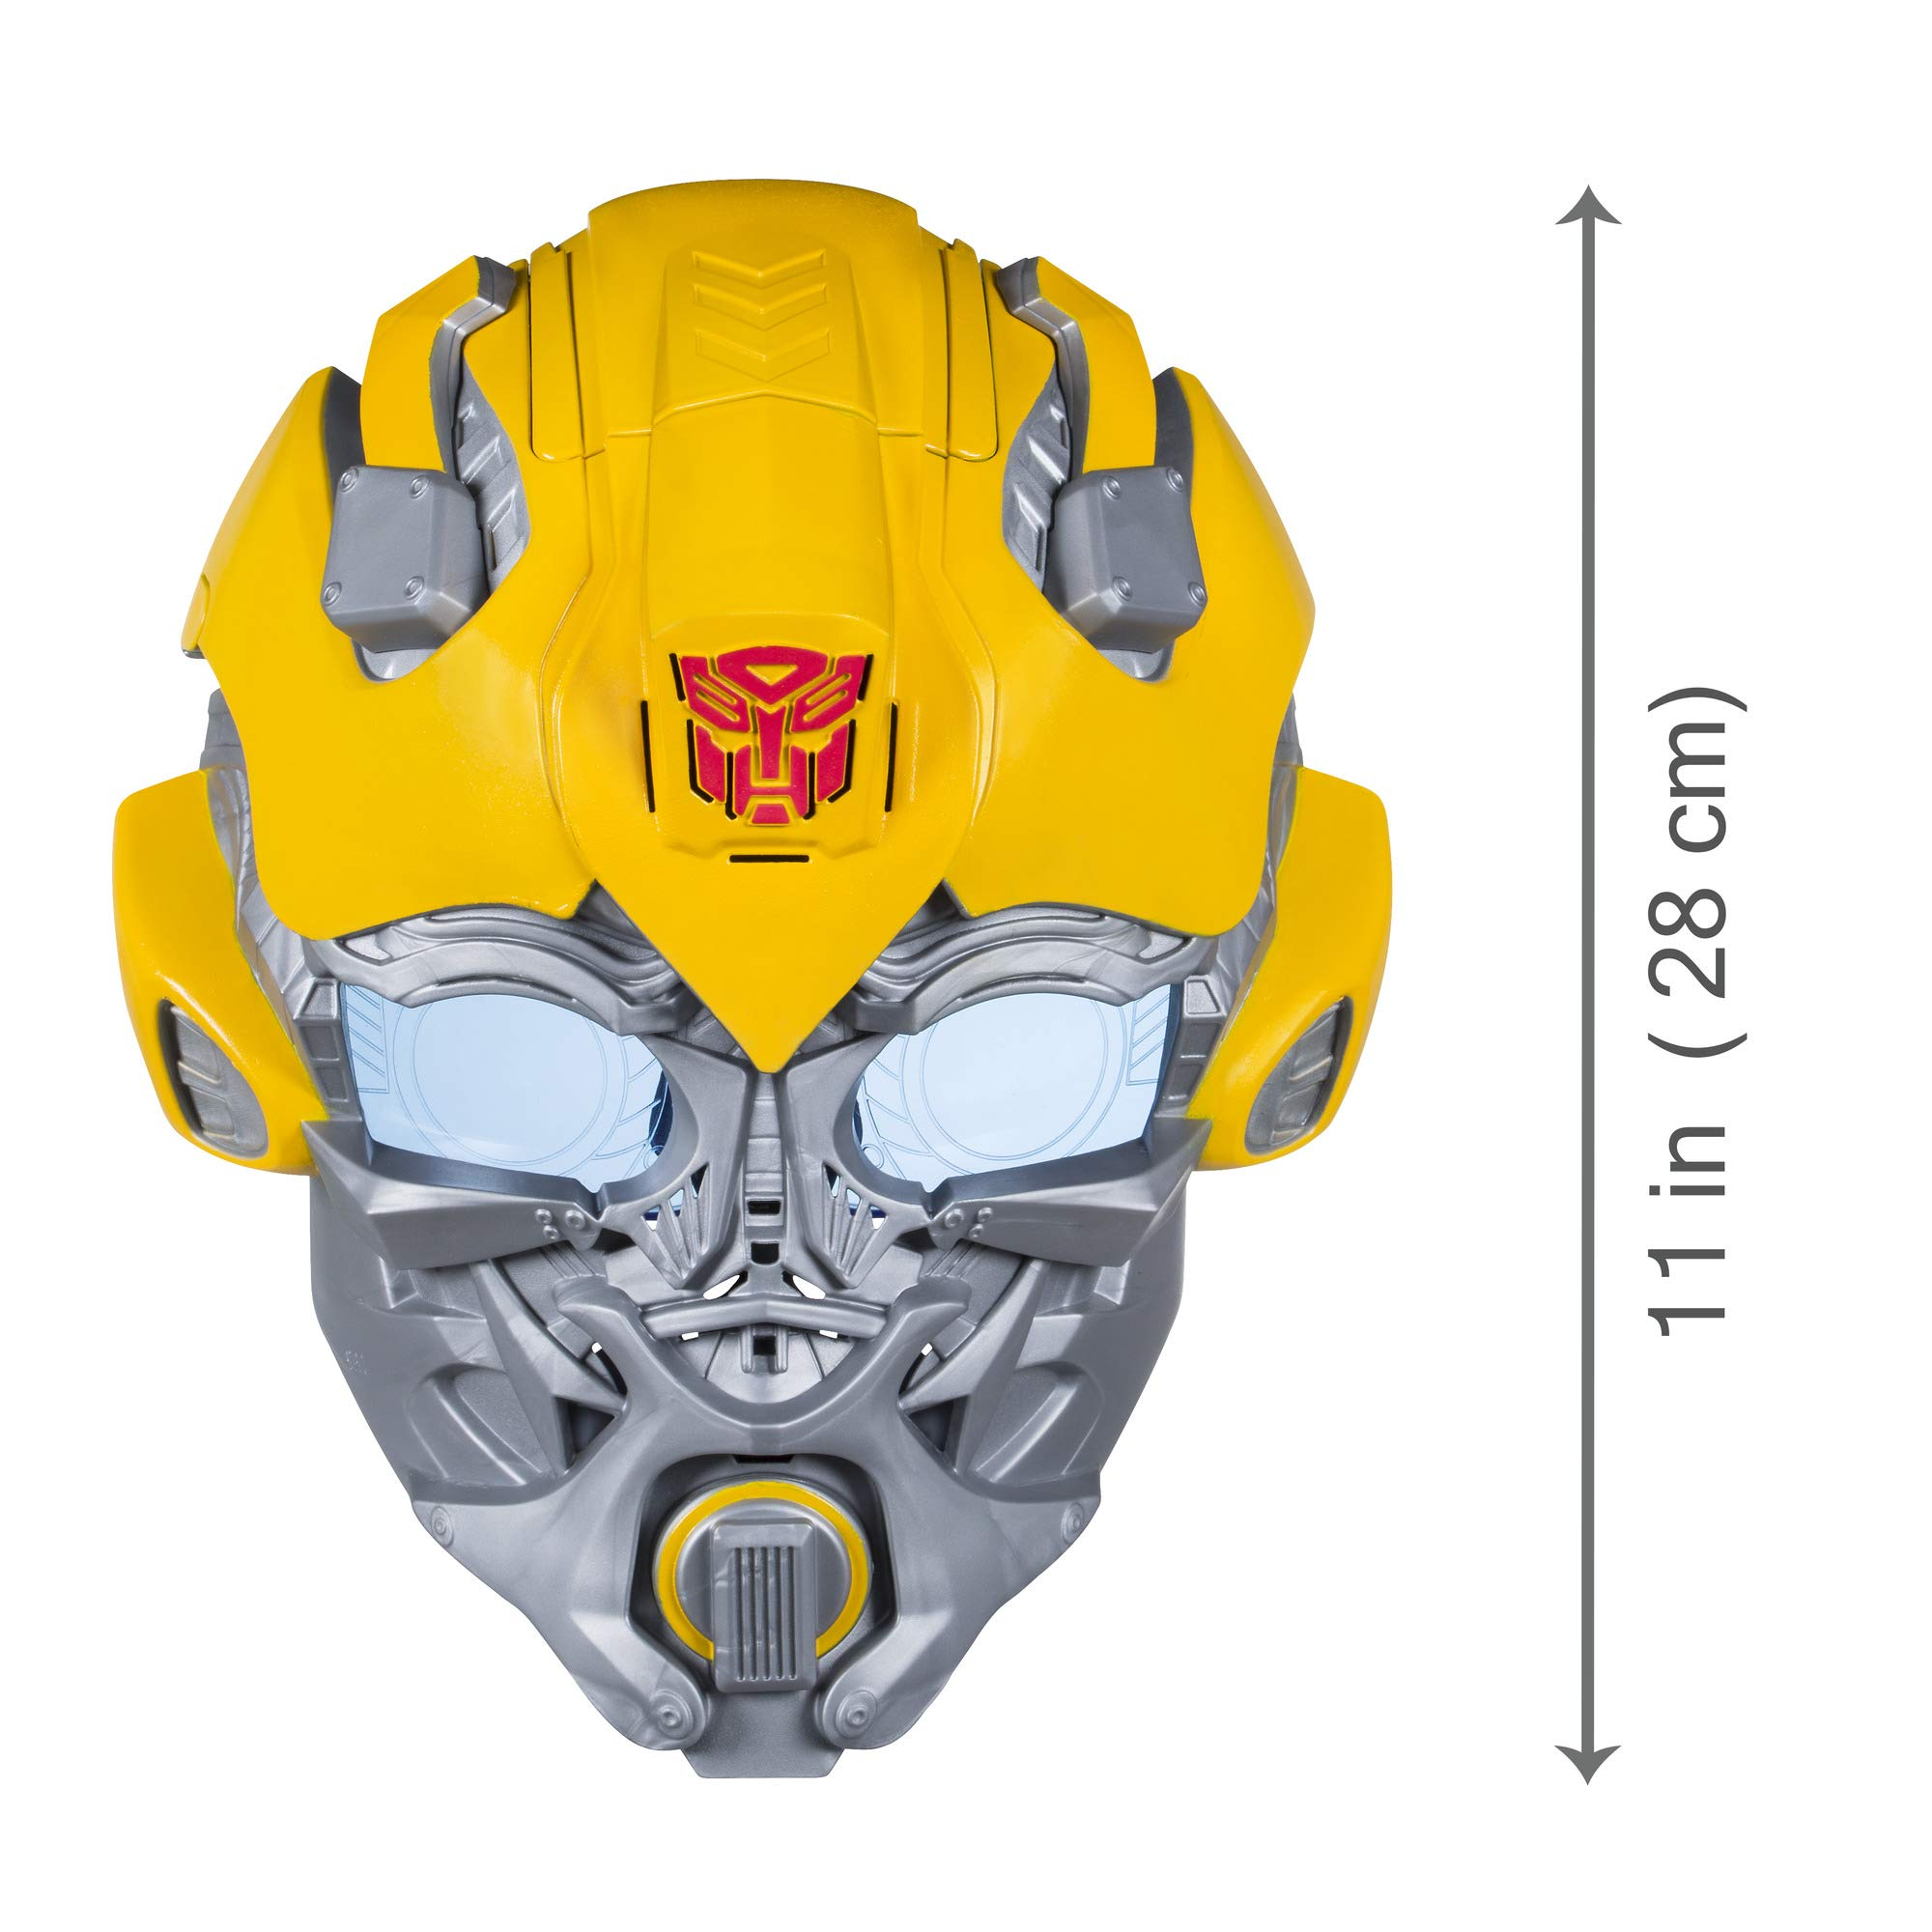 Transformers: Bumblebee -- Bumblebee Voice Changer Mask by Transformers (Image #7)